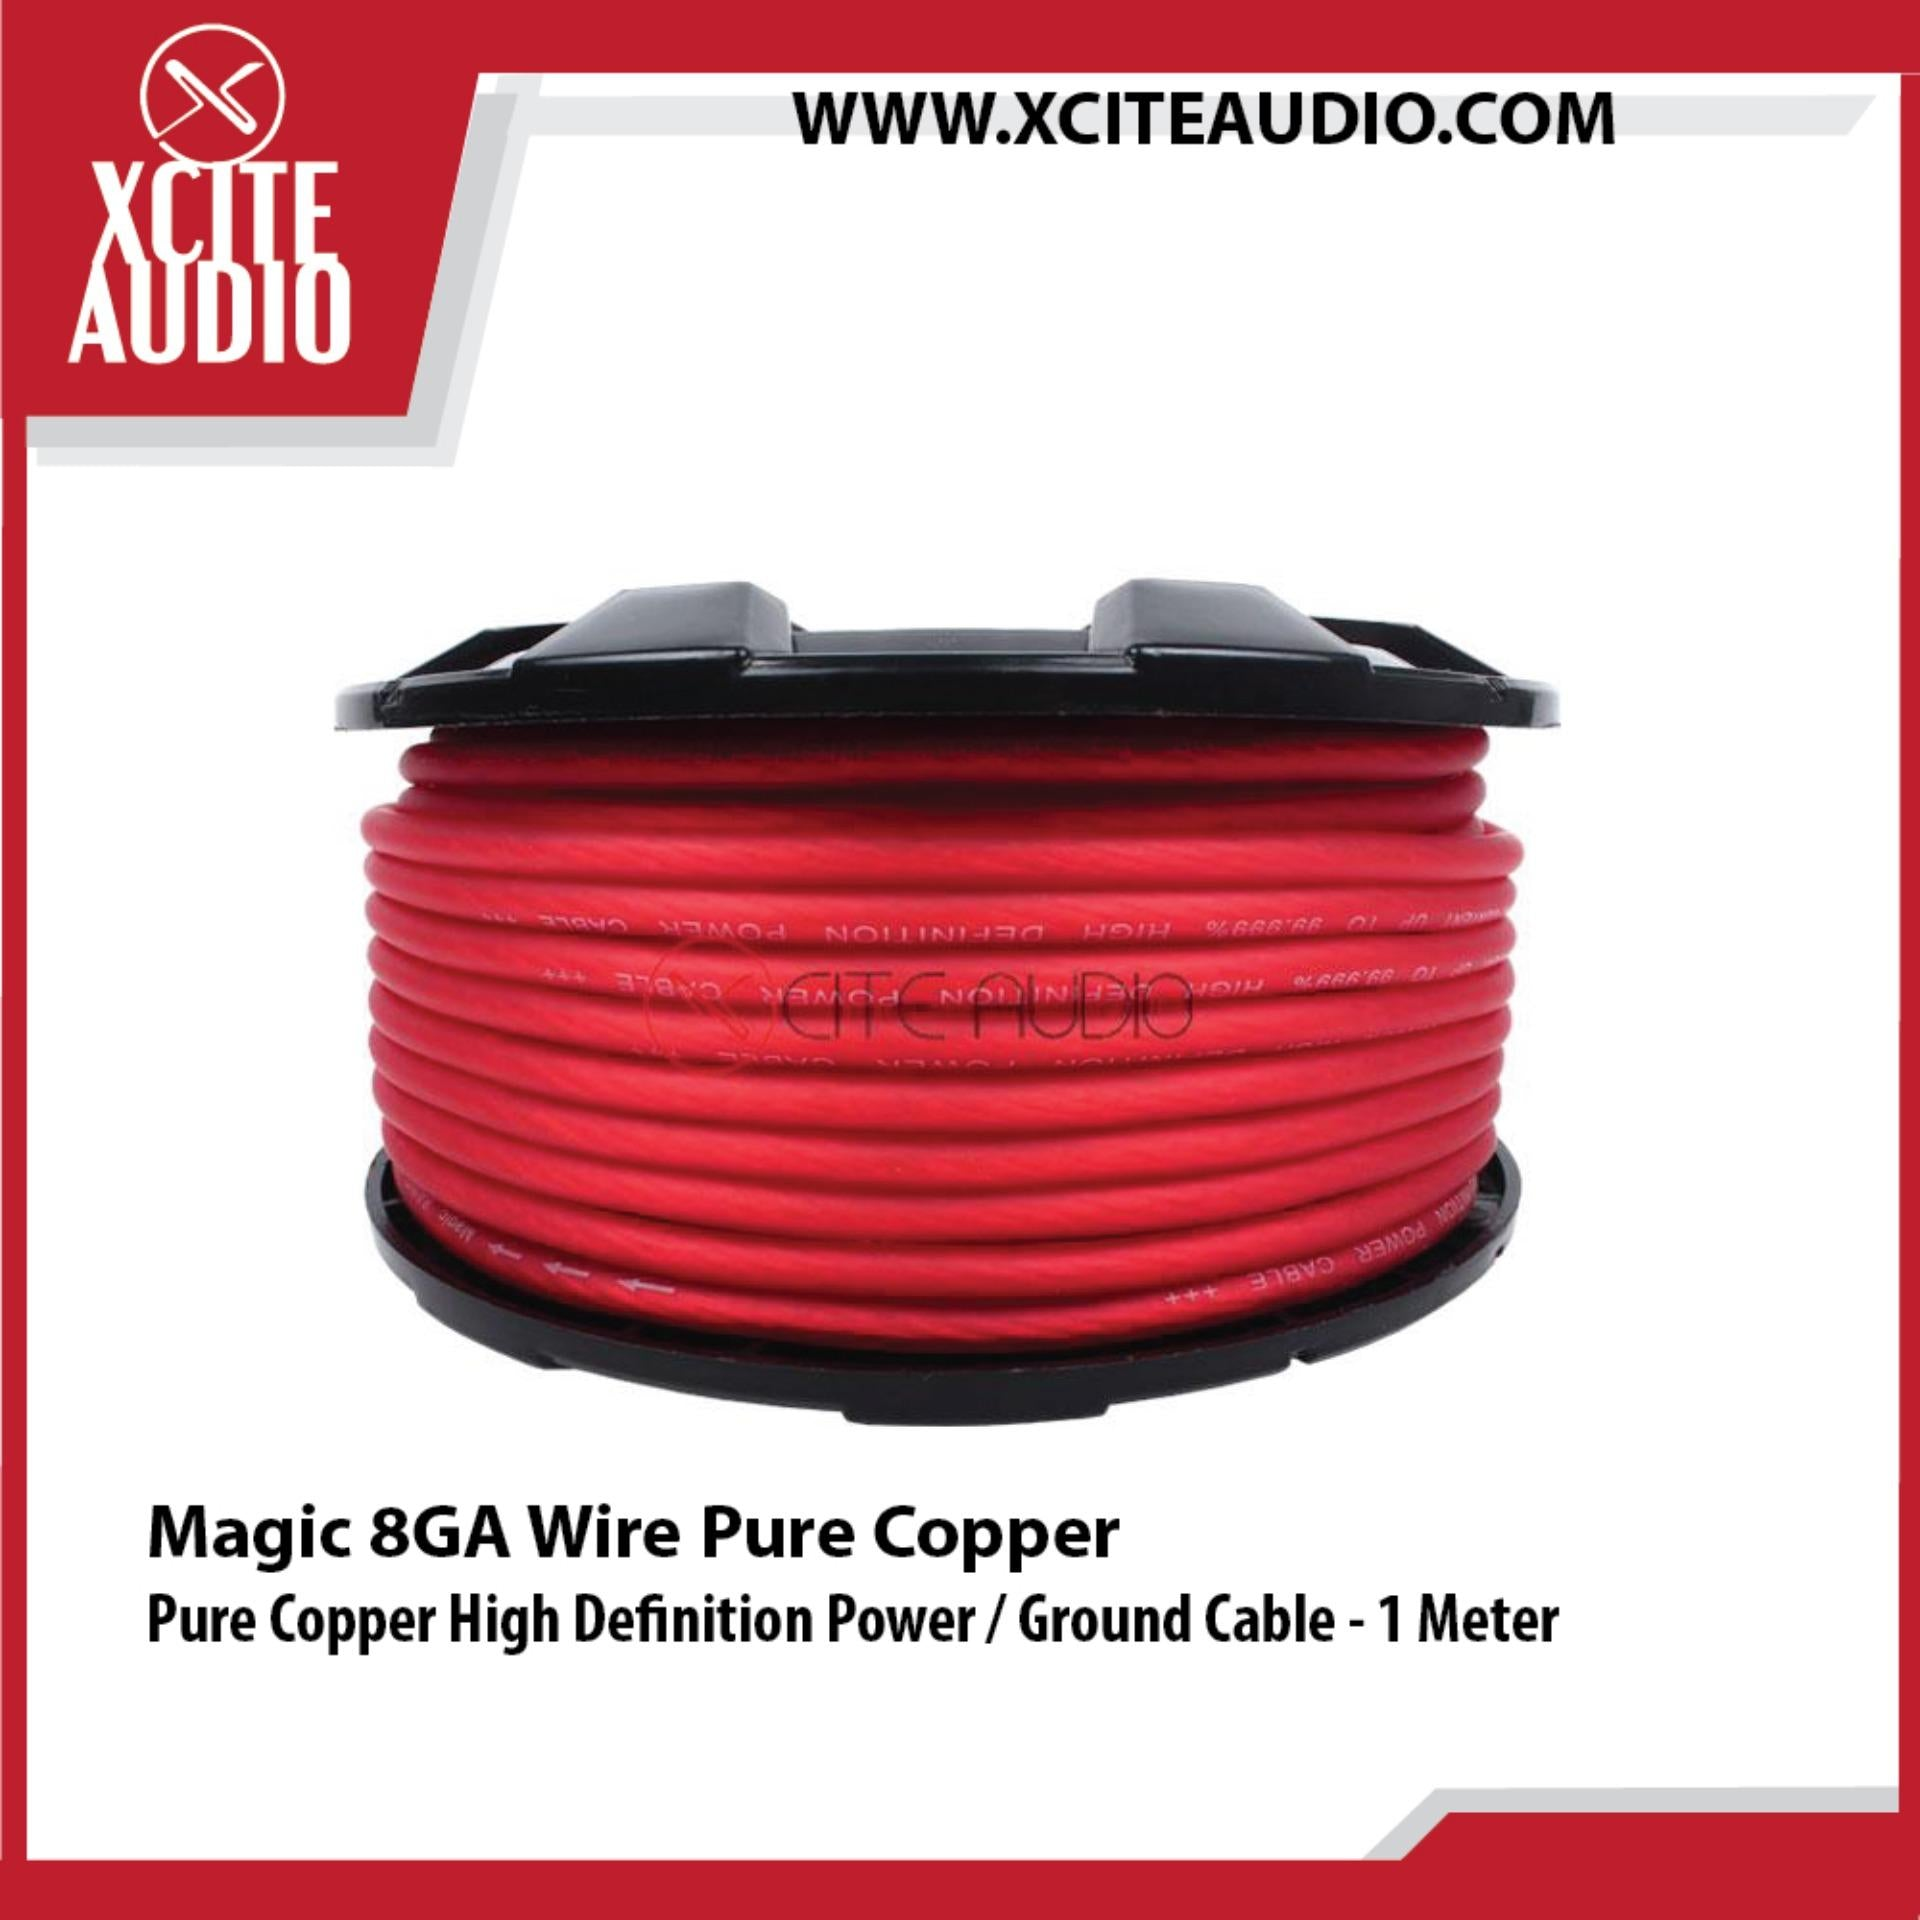 Magic 8GA Wire Pure Copper High Definition Power / Ground Cable - 1 Meter - Xcite Audio